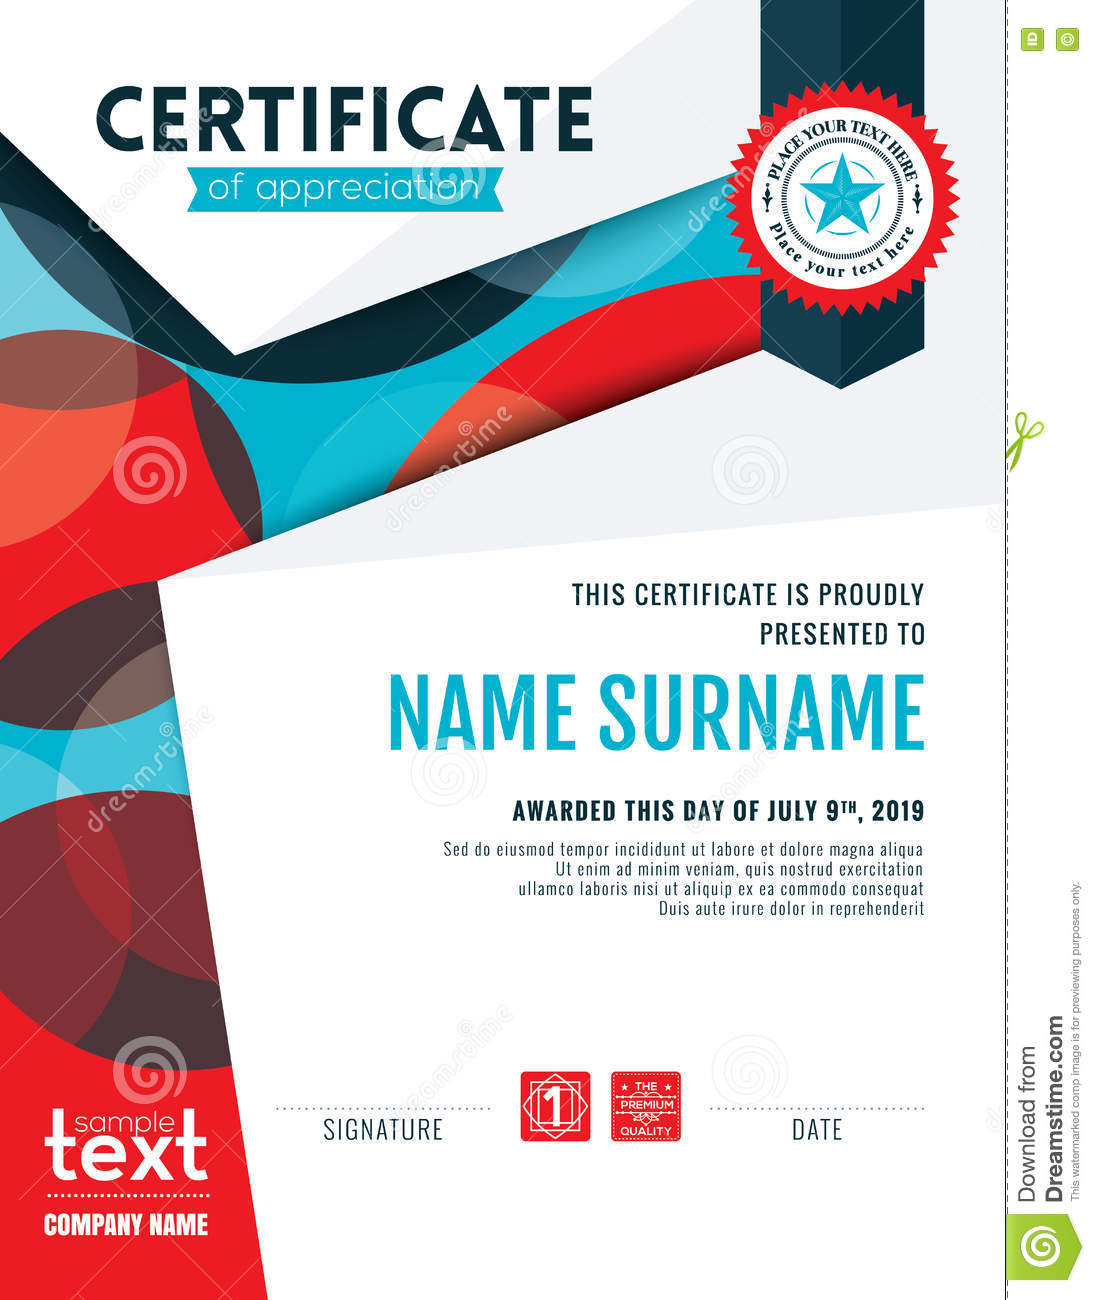 Certificate of appreciation template in modern design business certificate of appreciation template in modern design business vector illustration cartoondealer 92706094 yadclub Image collections